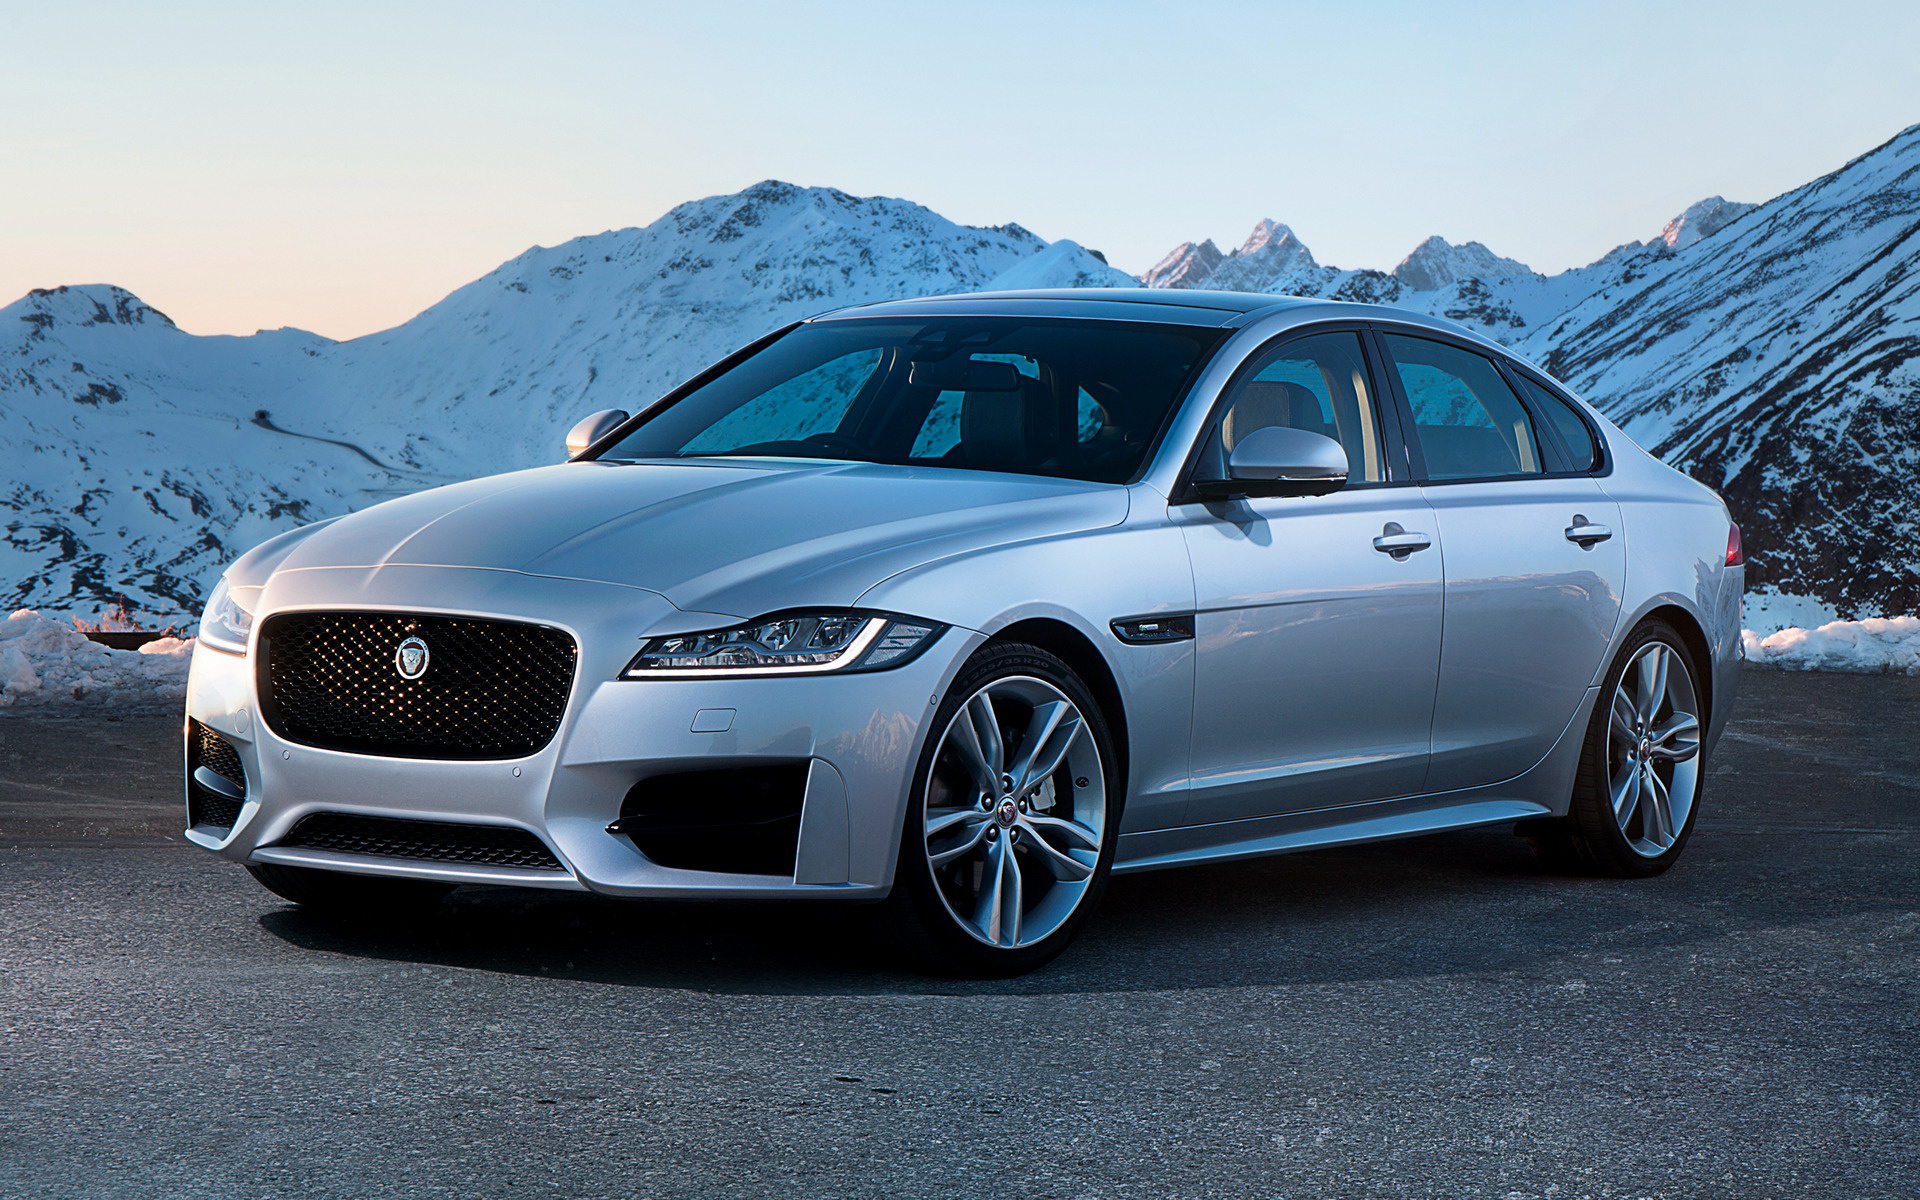 2016 Jaguar XF R-Sport (UK) - Wallpapers and HD Images ...